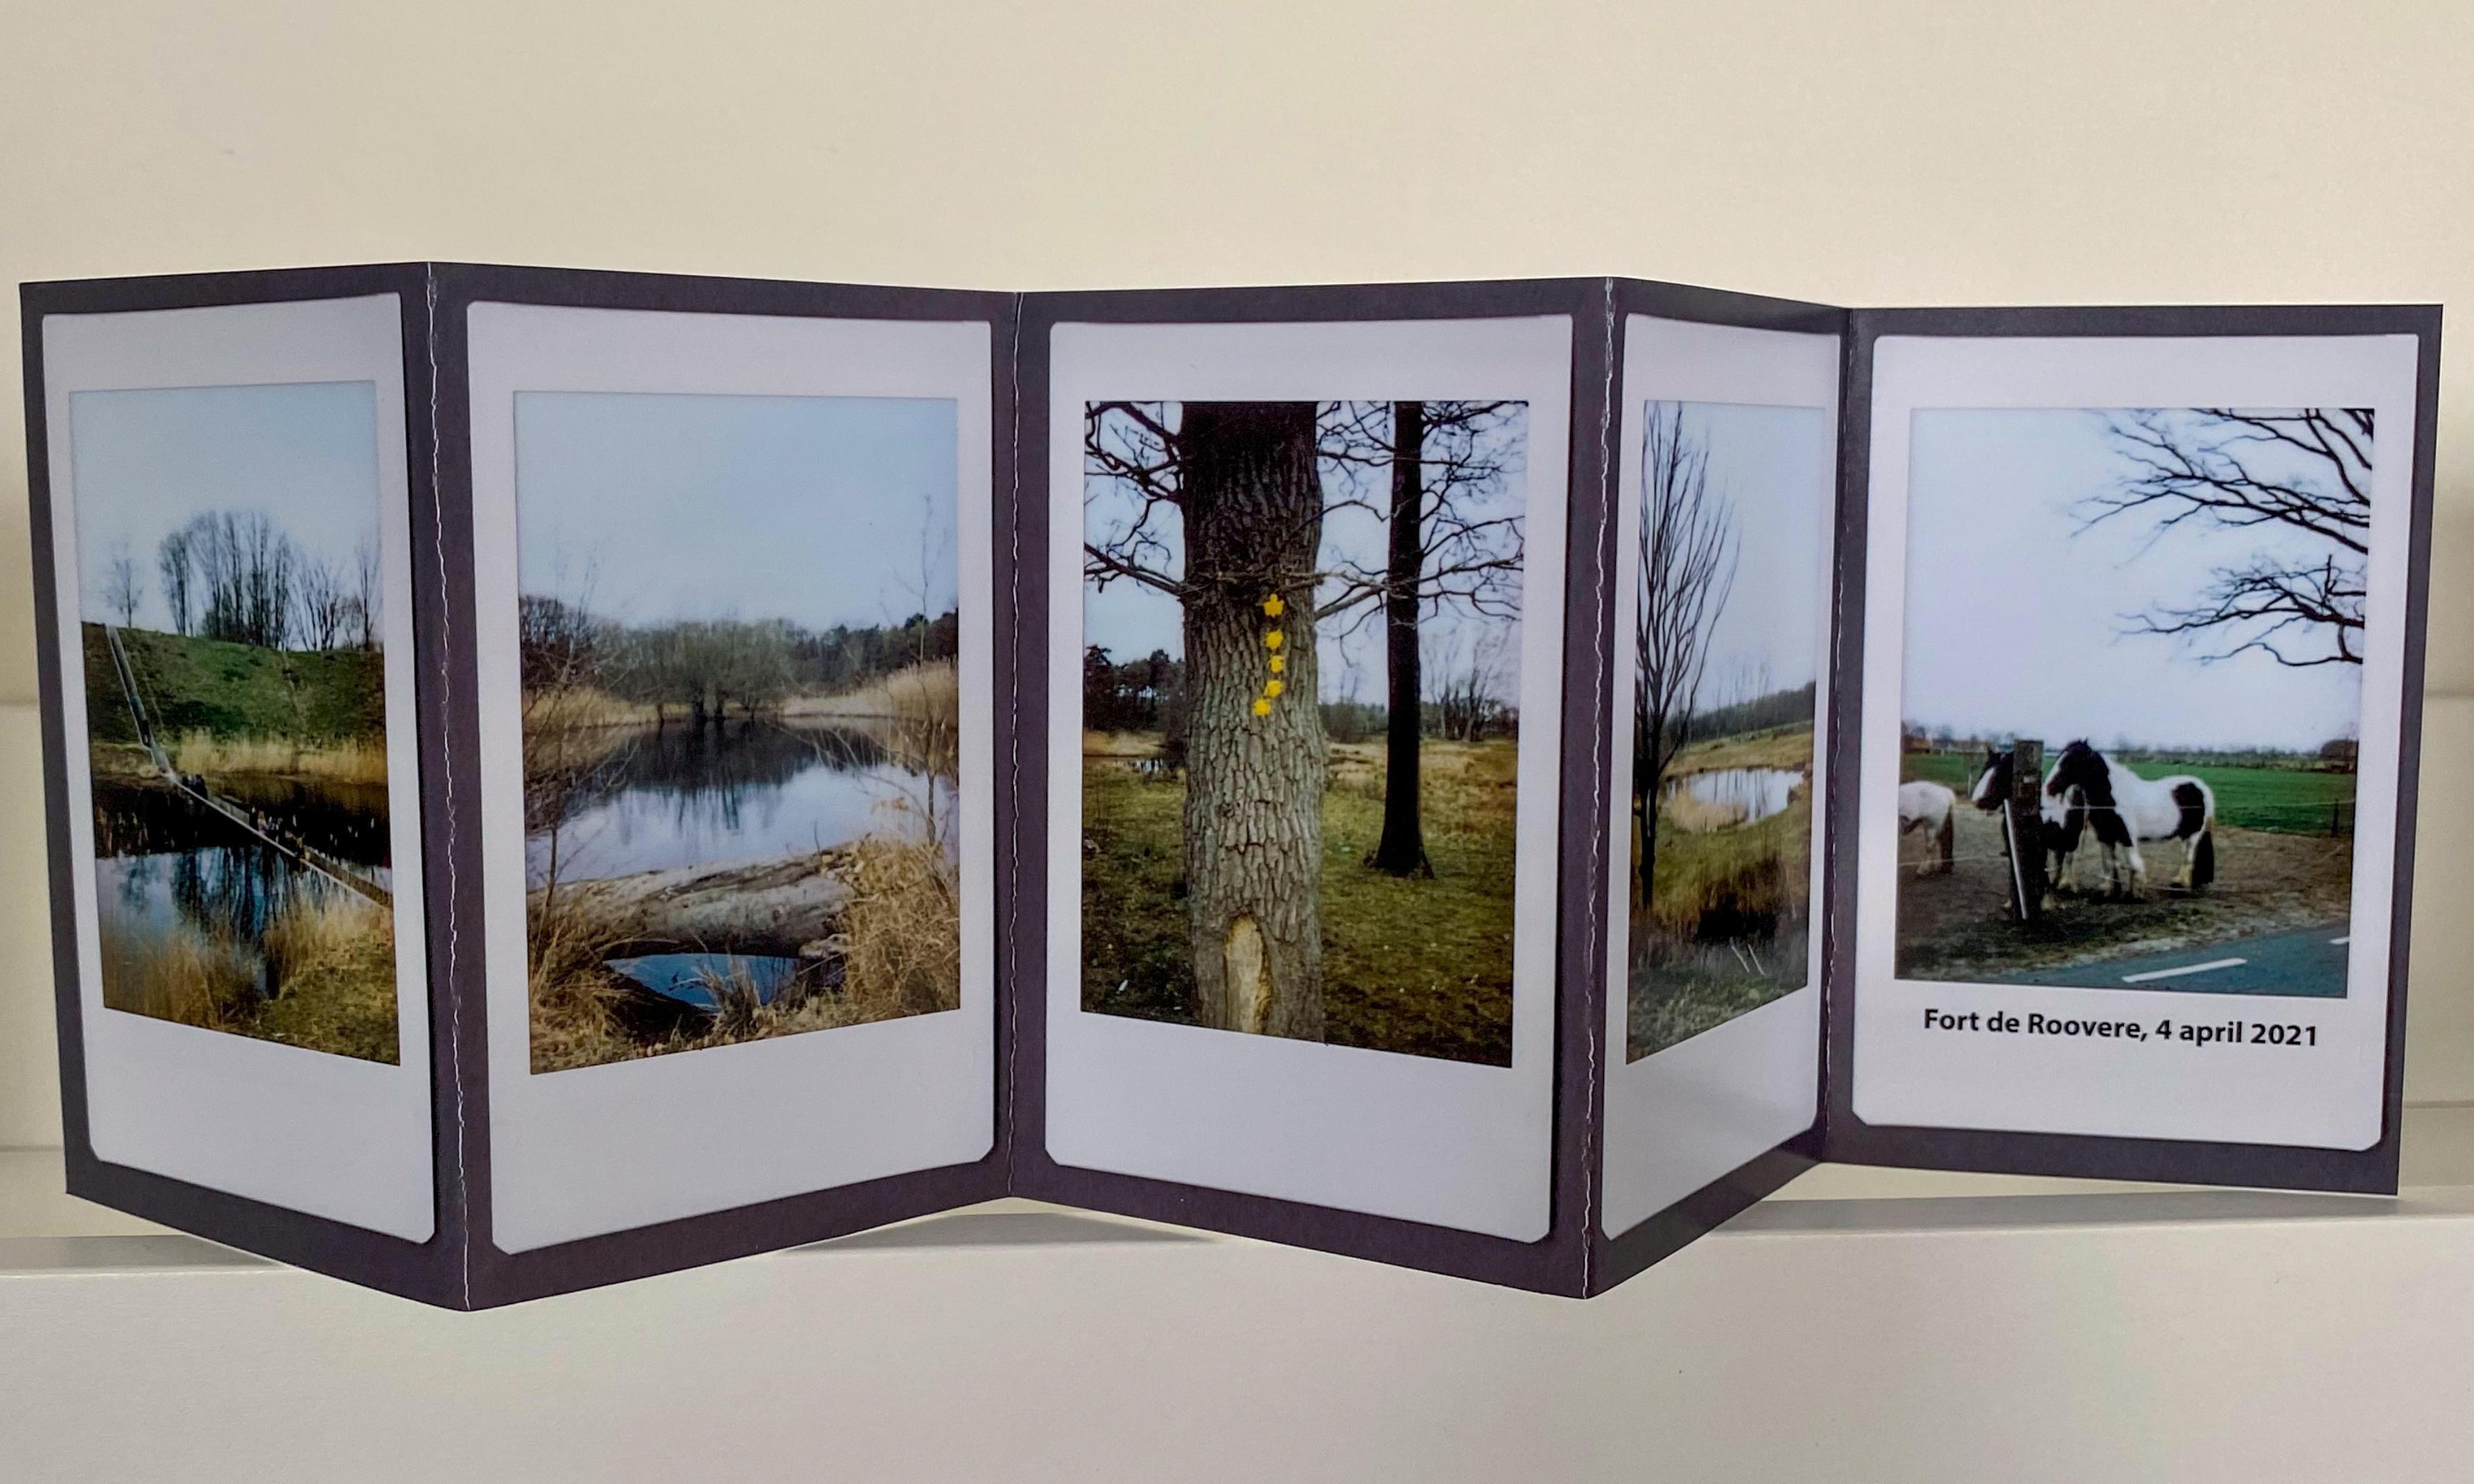 5 images printed and displayed on a gray cardboard back drop